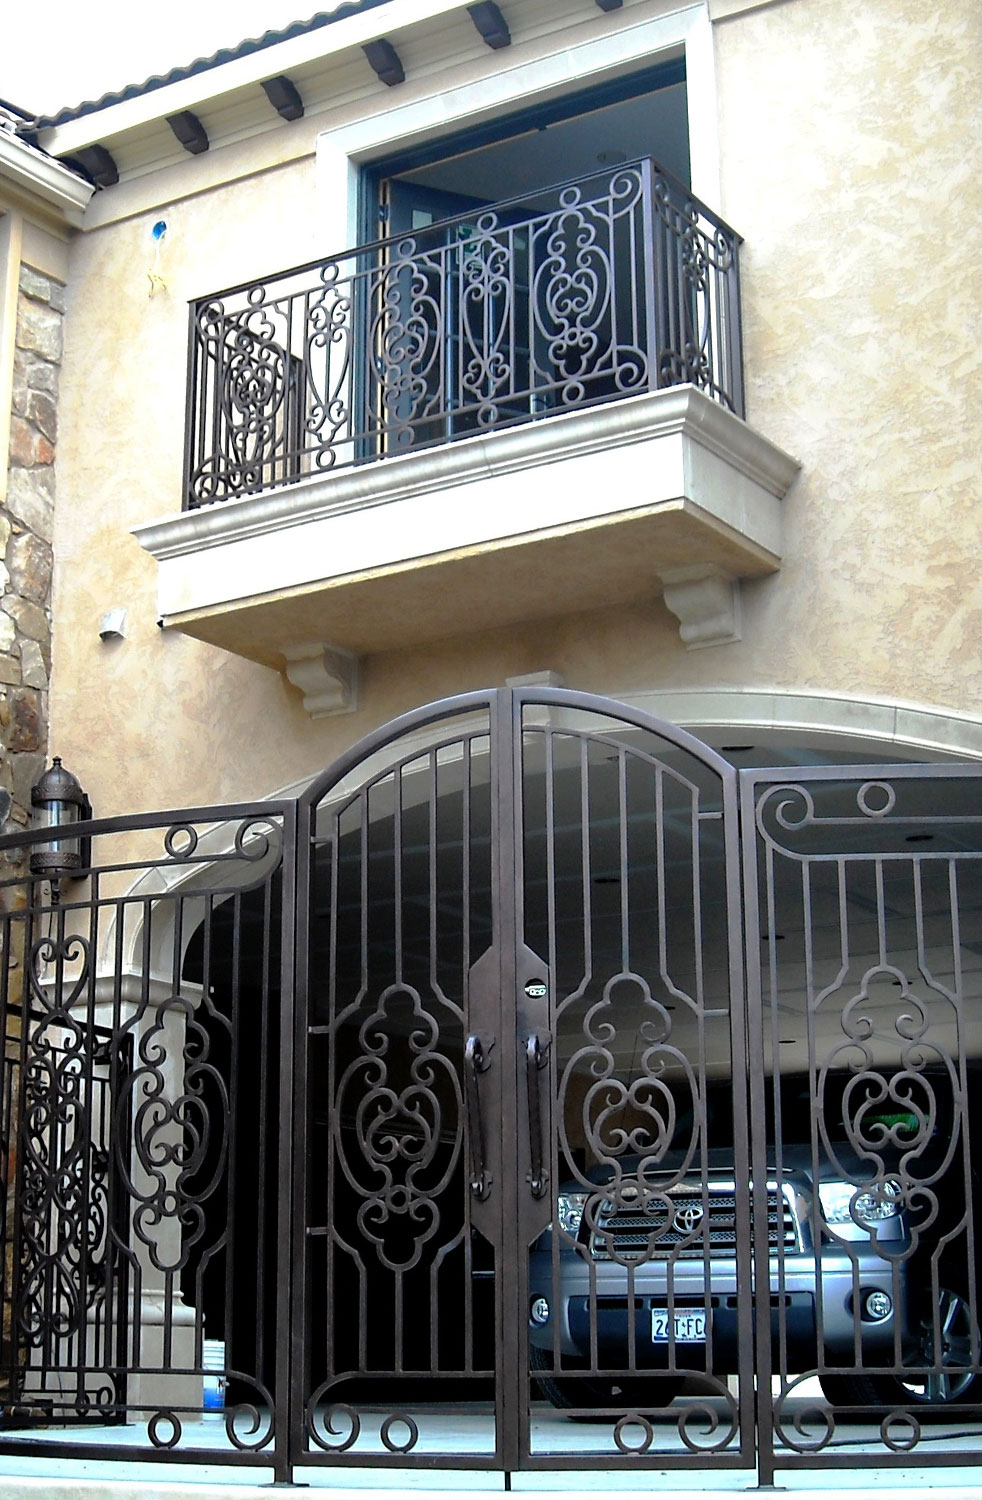 Handmade Top Villa Wrought Iron Gate One Stop Shipping To USA Hench-lg10